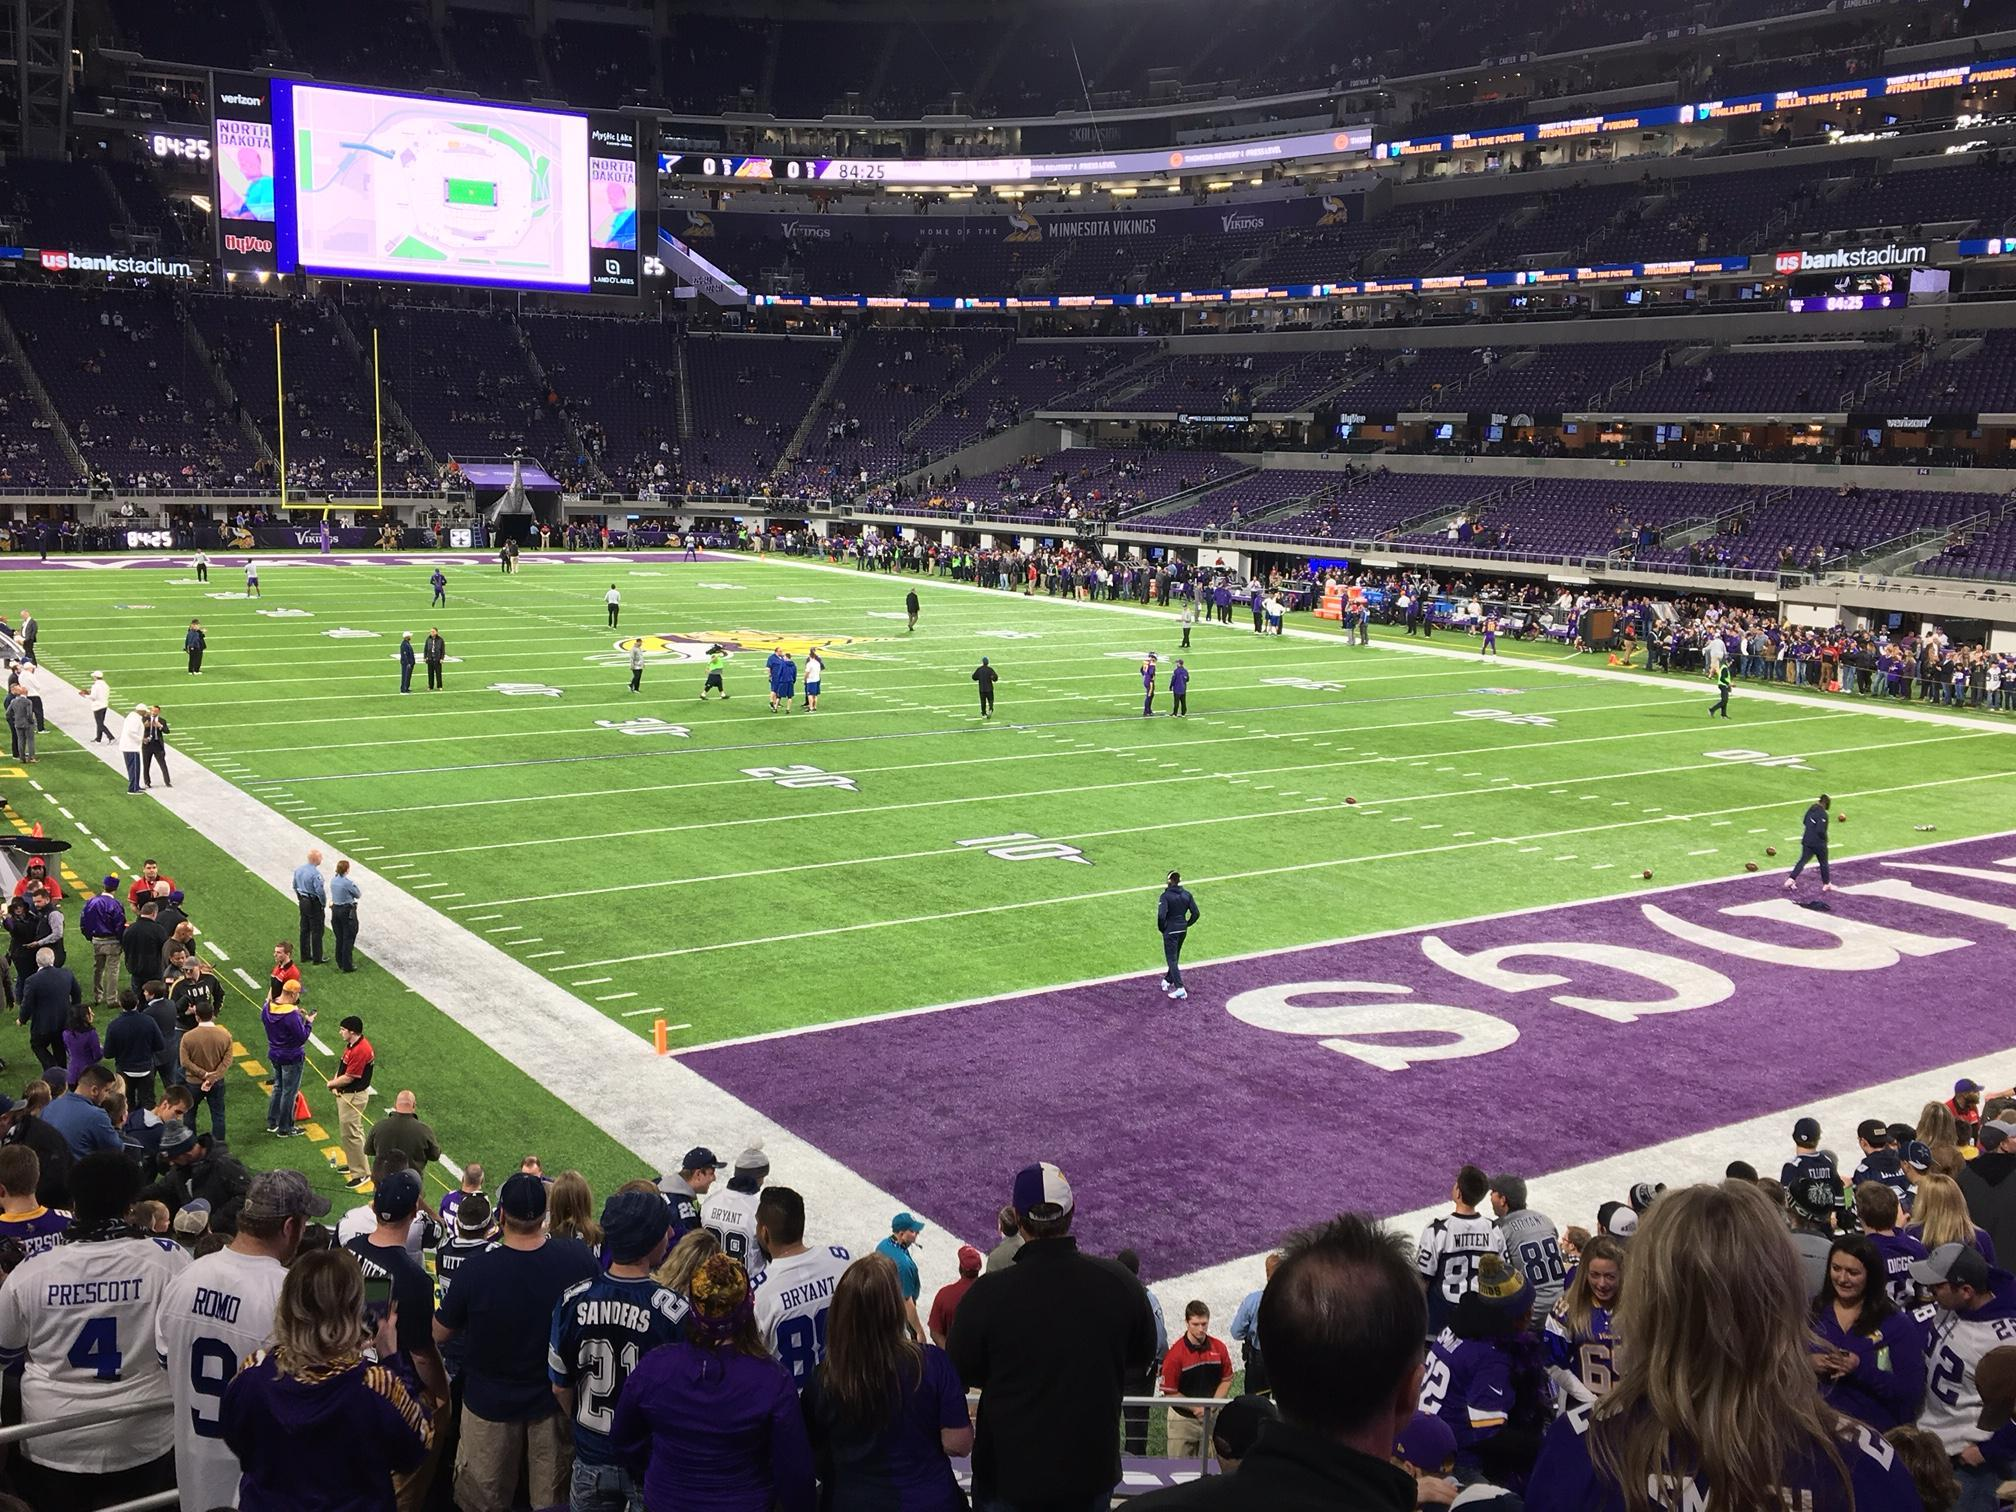 U.S. Bank Stadium Section 101 Row 15 Seat 25 and 26